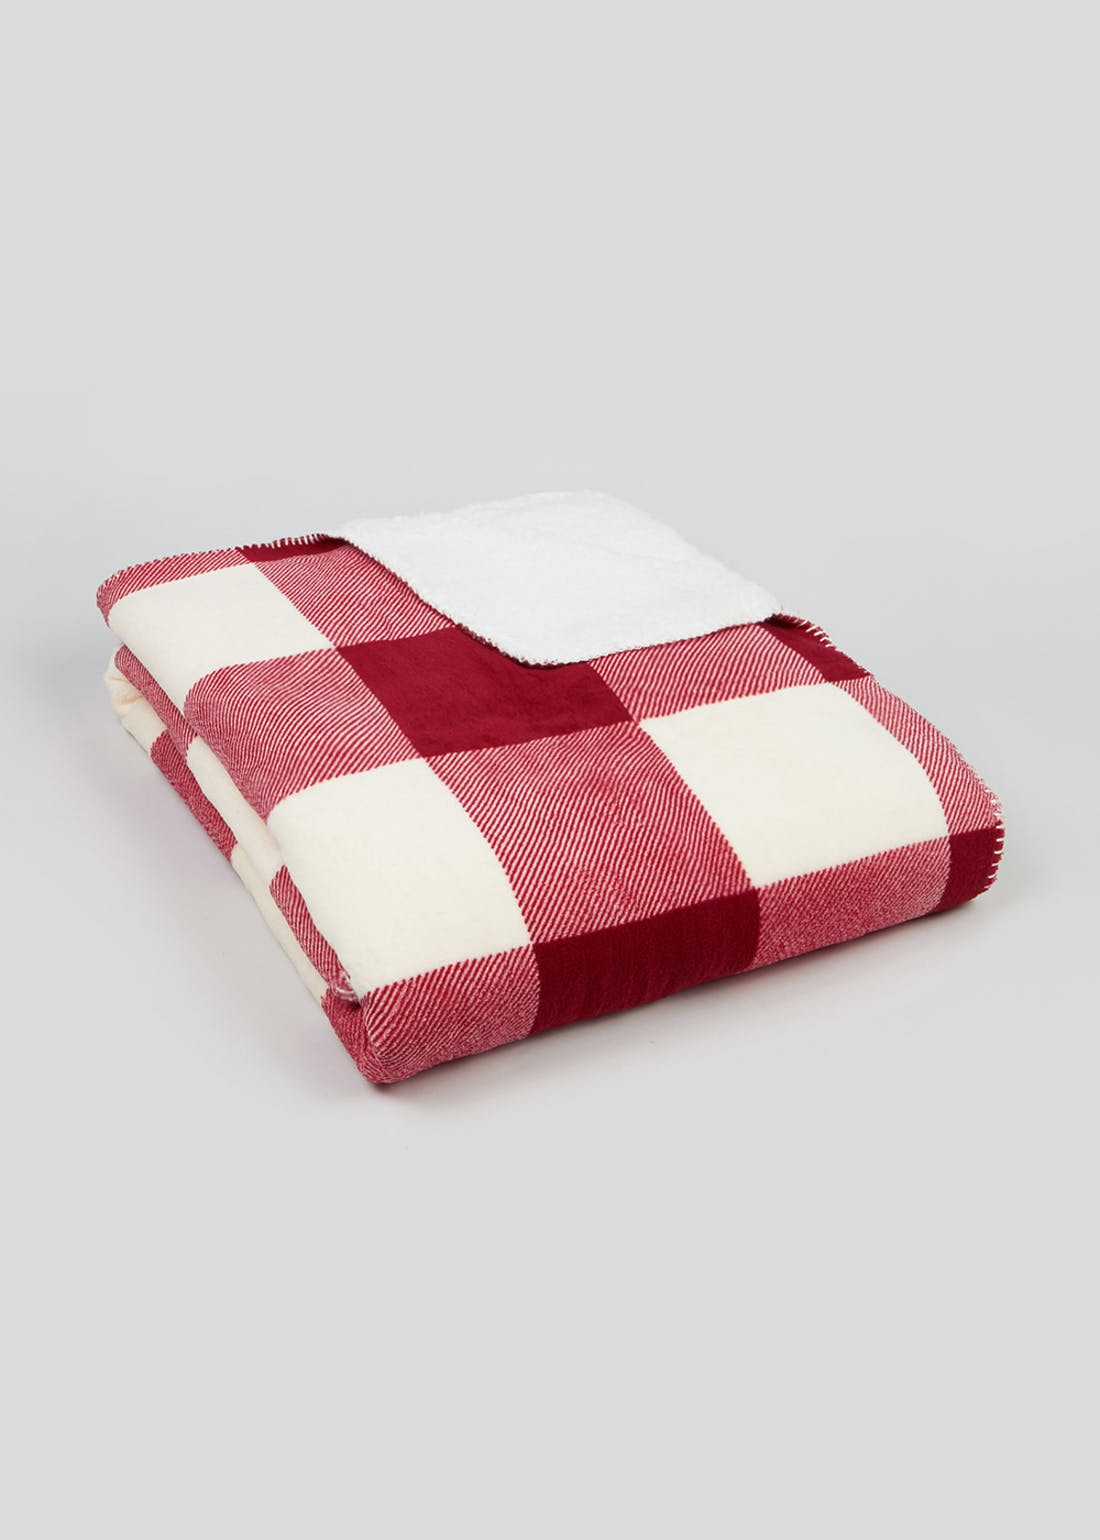 Check Fleece Back Throw Blanket (180cm x 150cm)